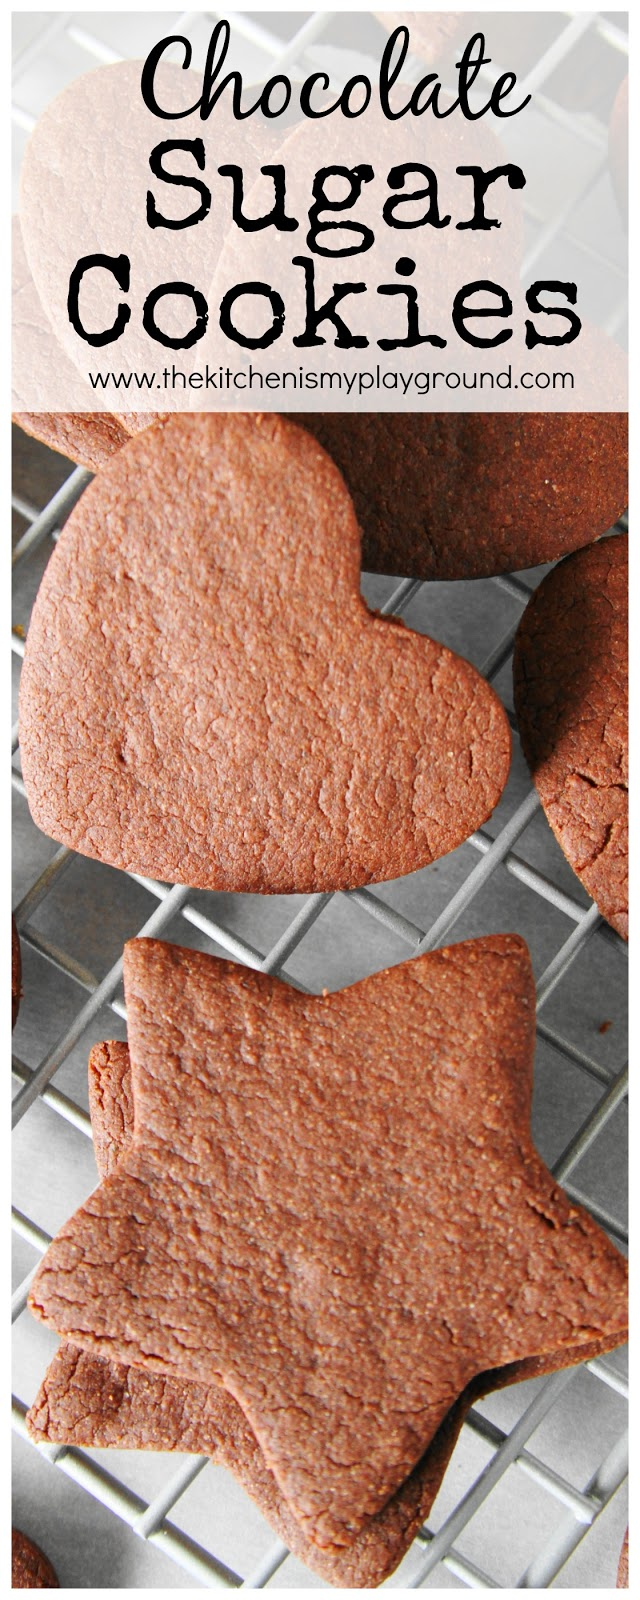 Chocolate Sugar Cookies - The Kitchen is My Playground